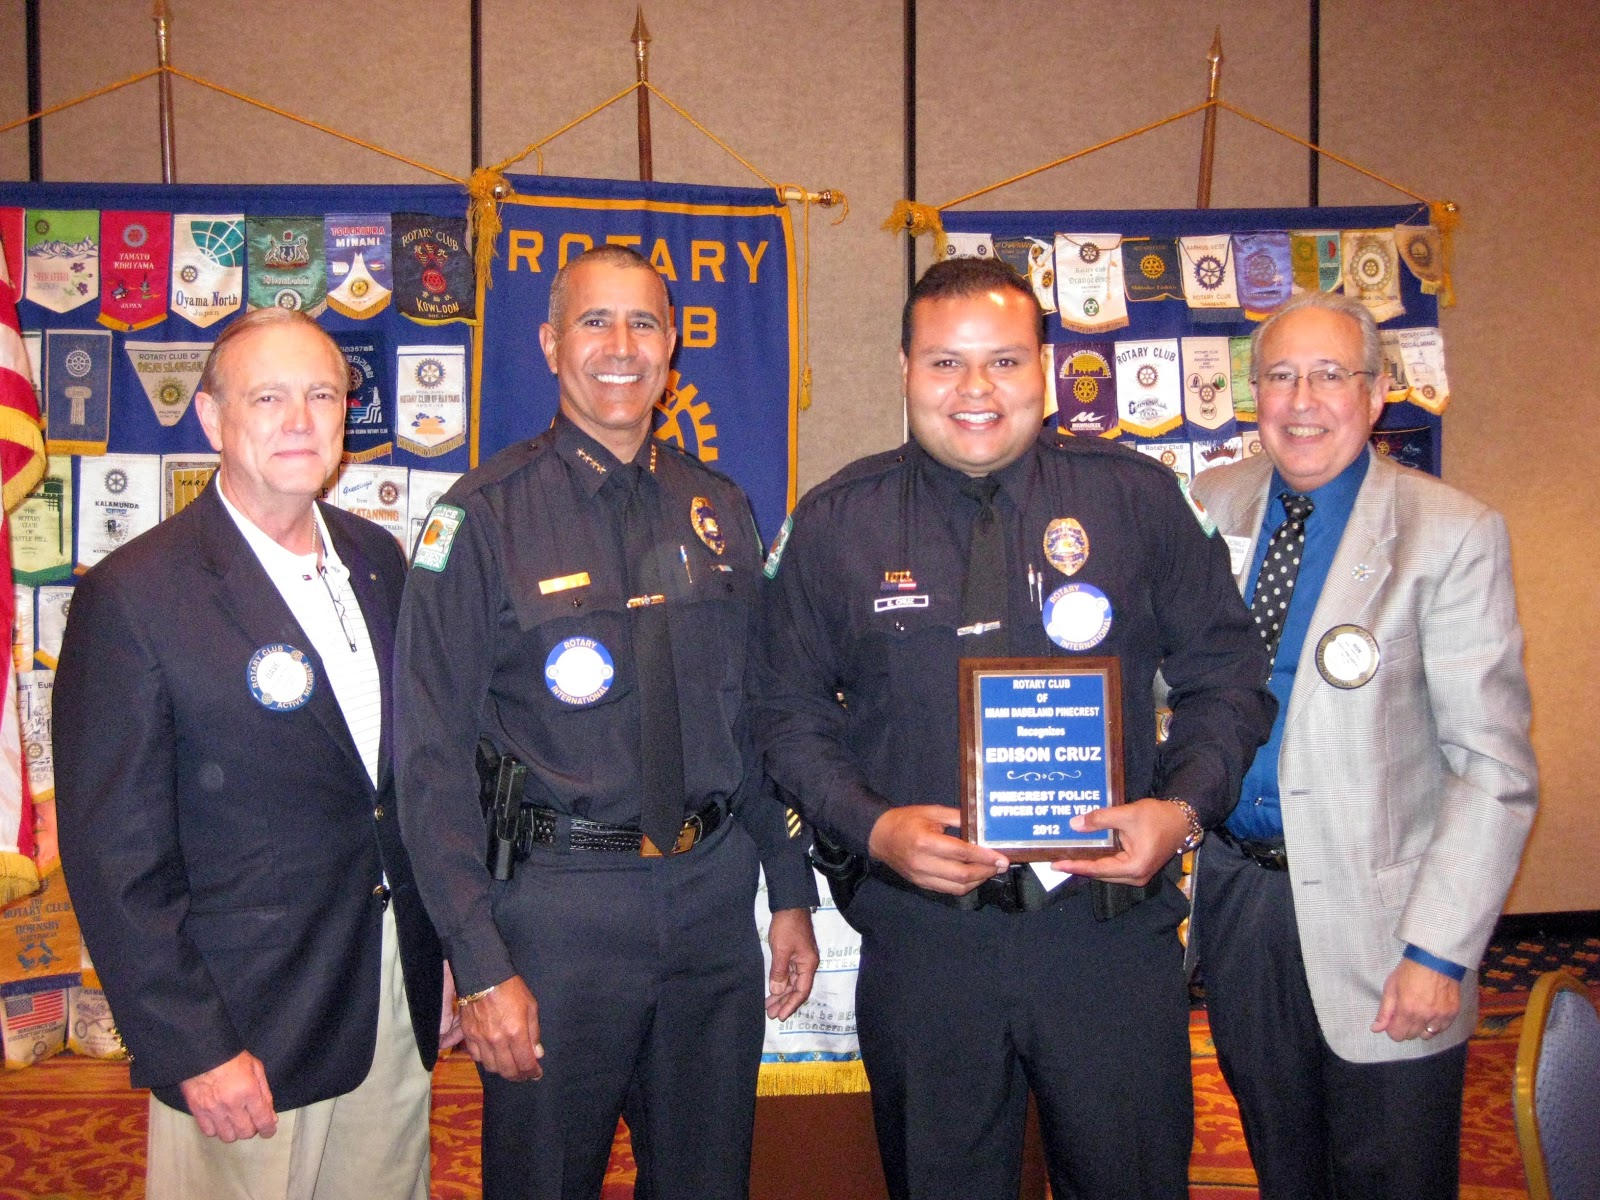 Pinecrest's new police chief Samuel Ceballos, Officer of the year Edison Cruz